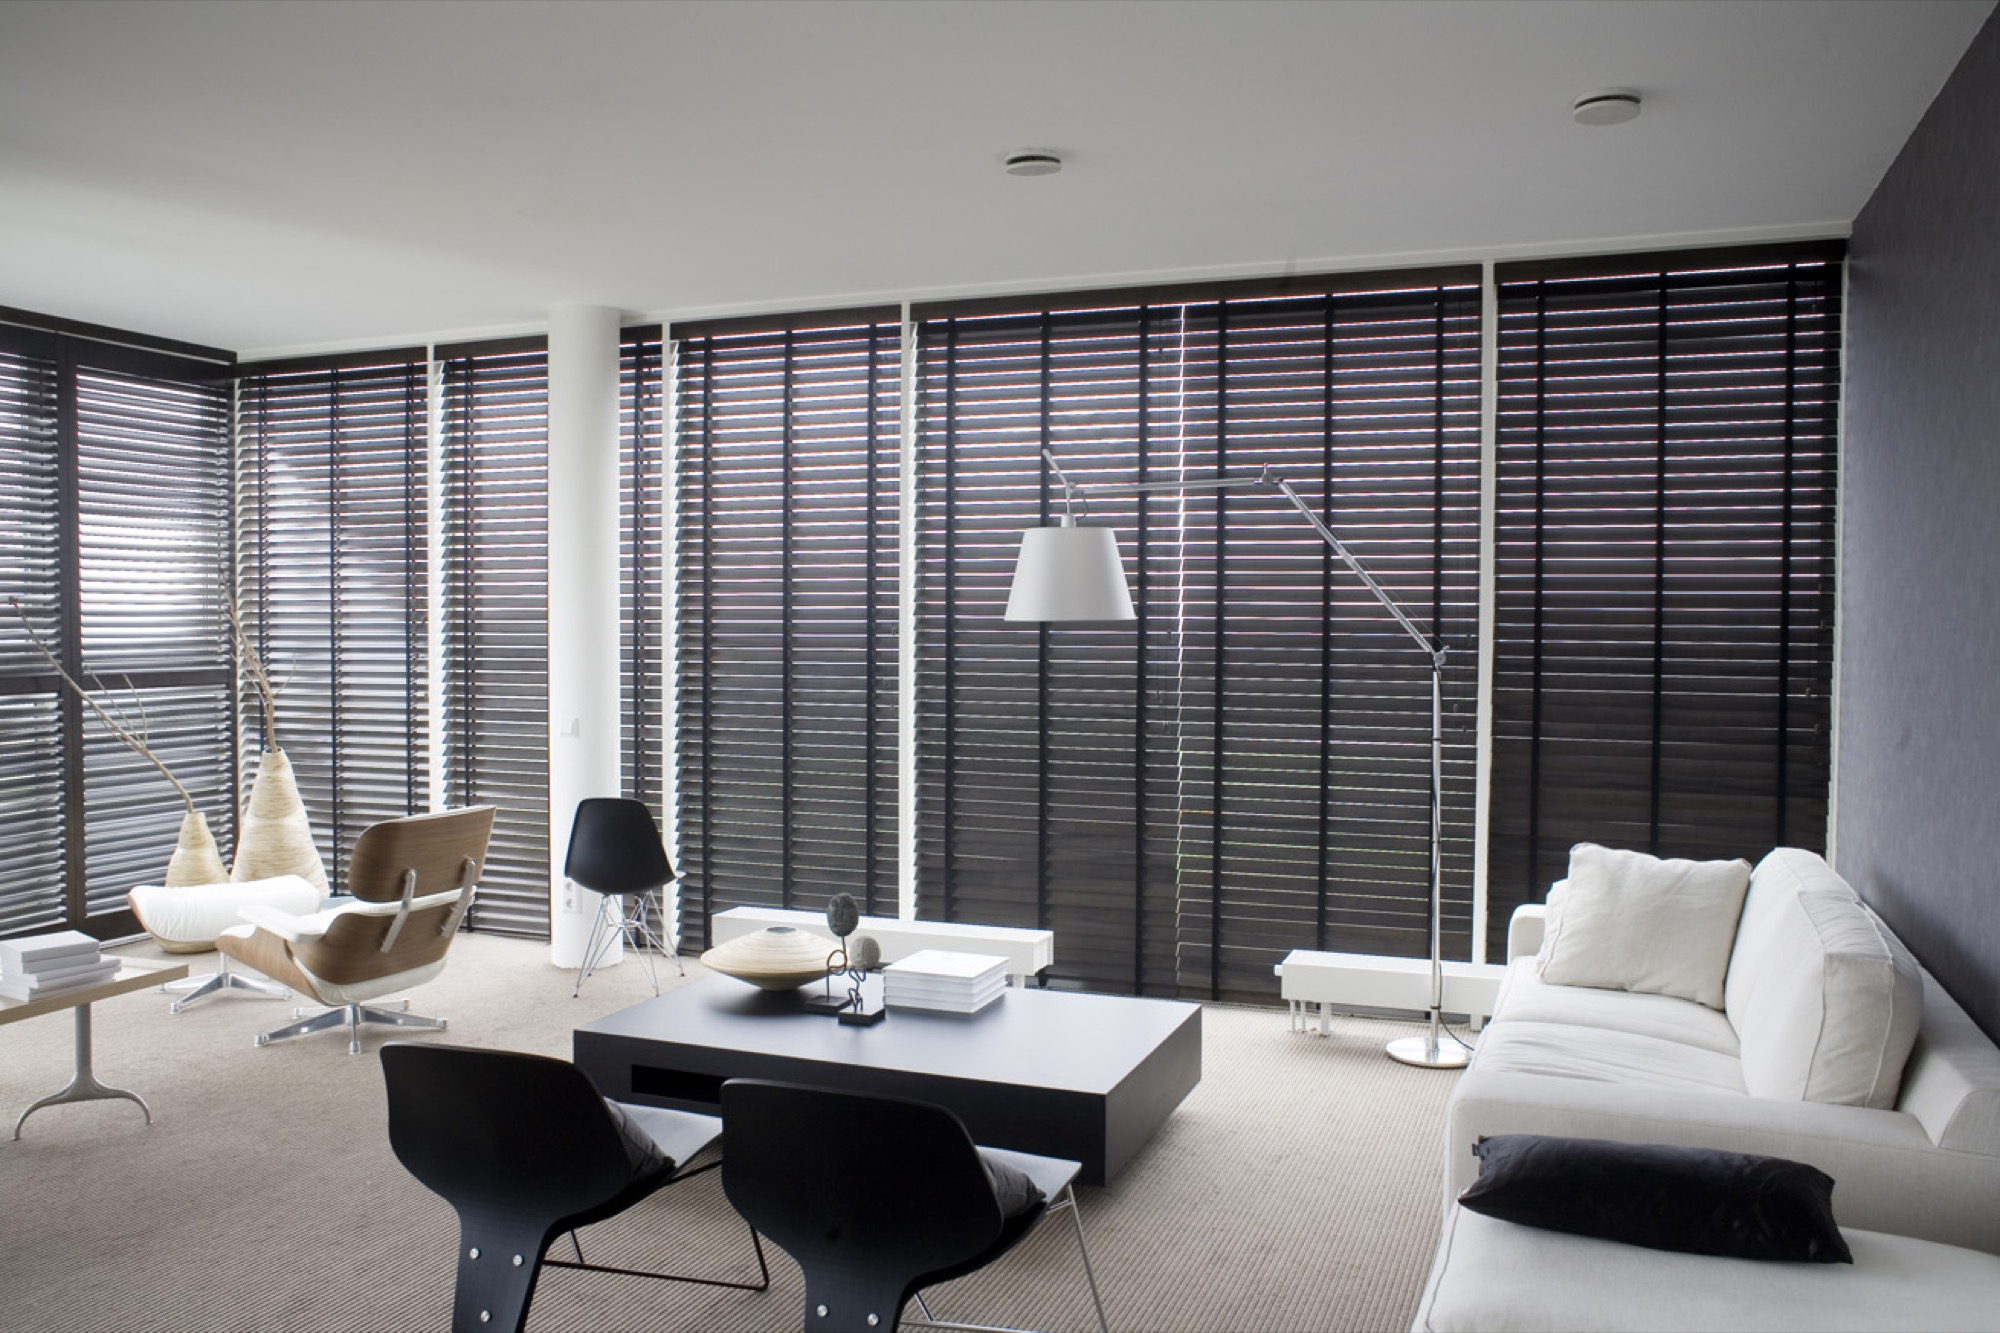 Jasno-shutters-and-blinds-1